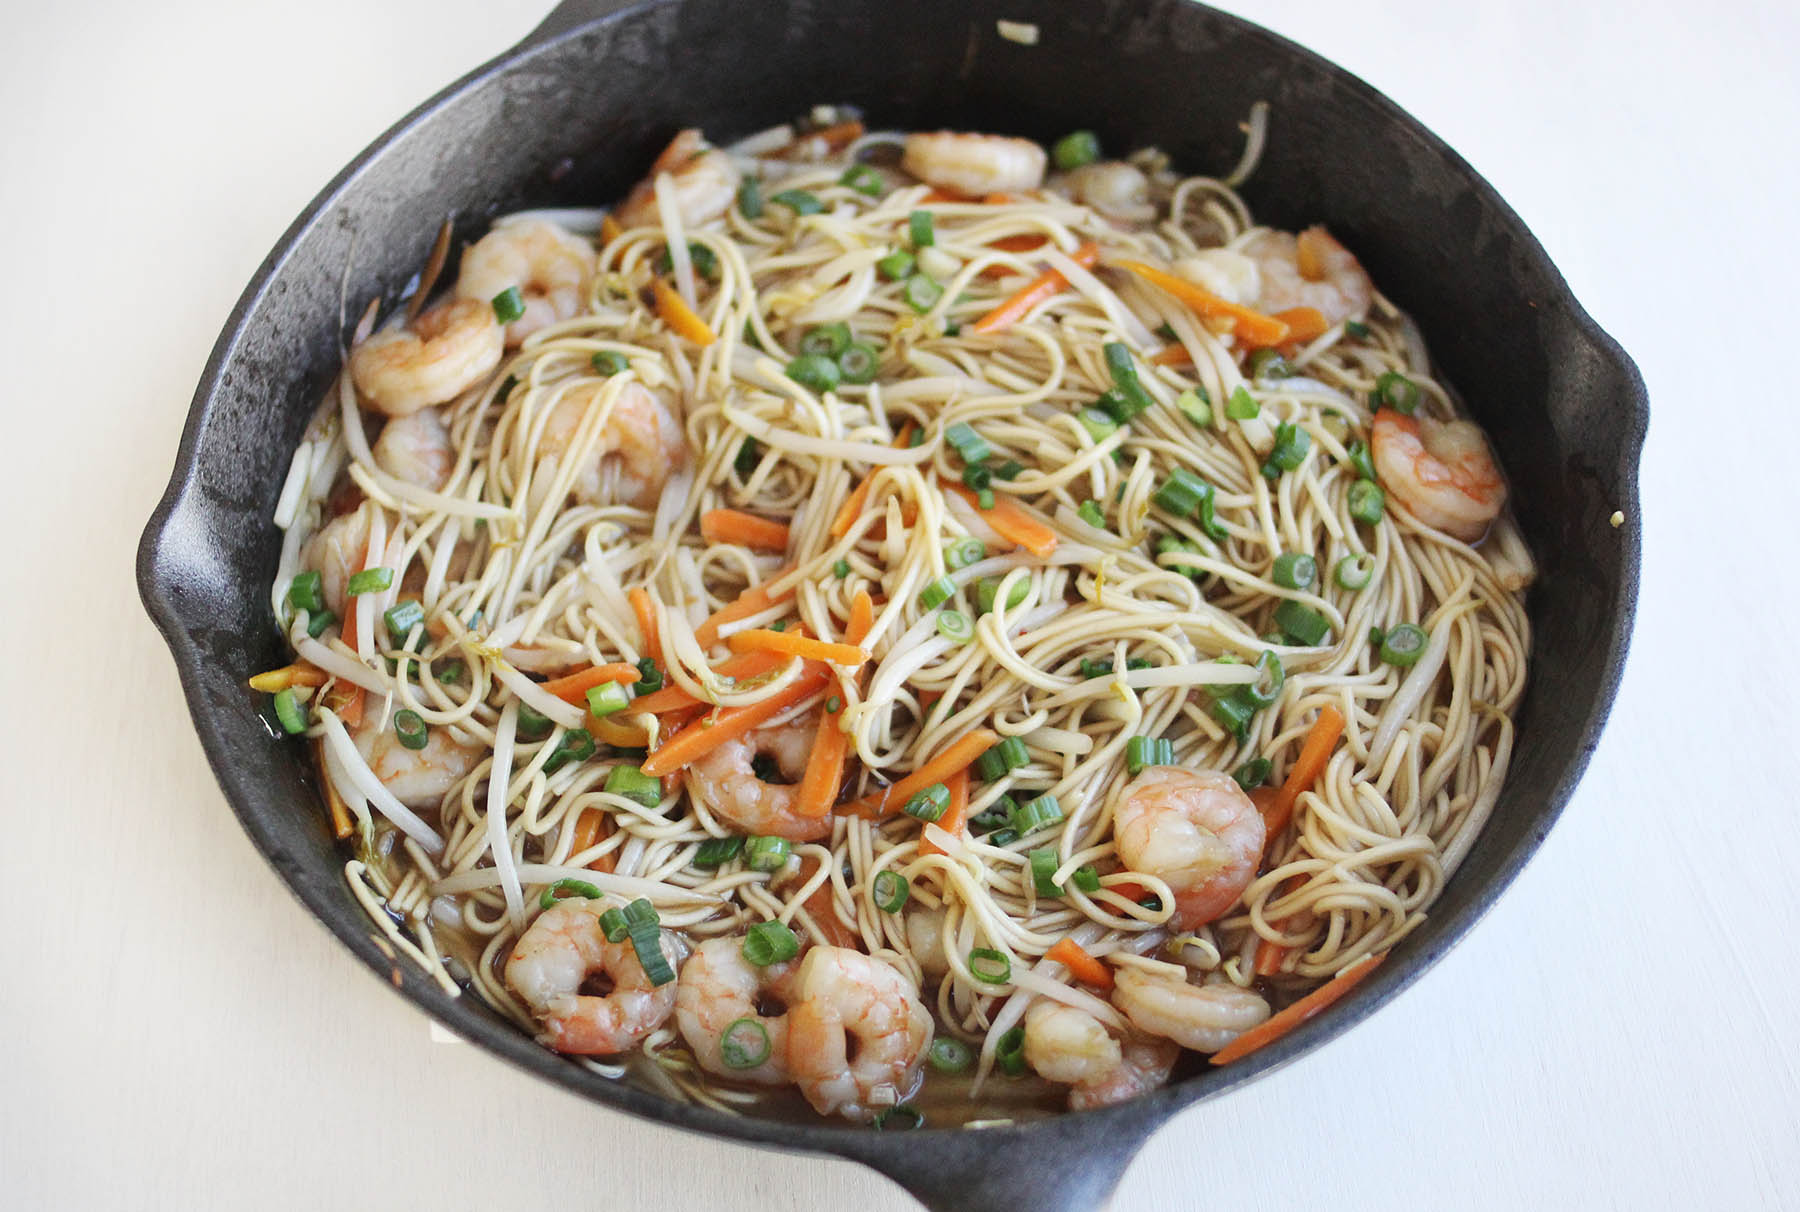 How to make shrimp lo mein